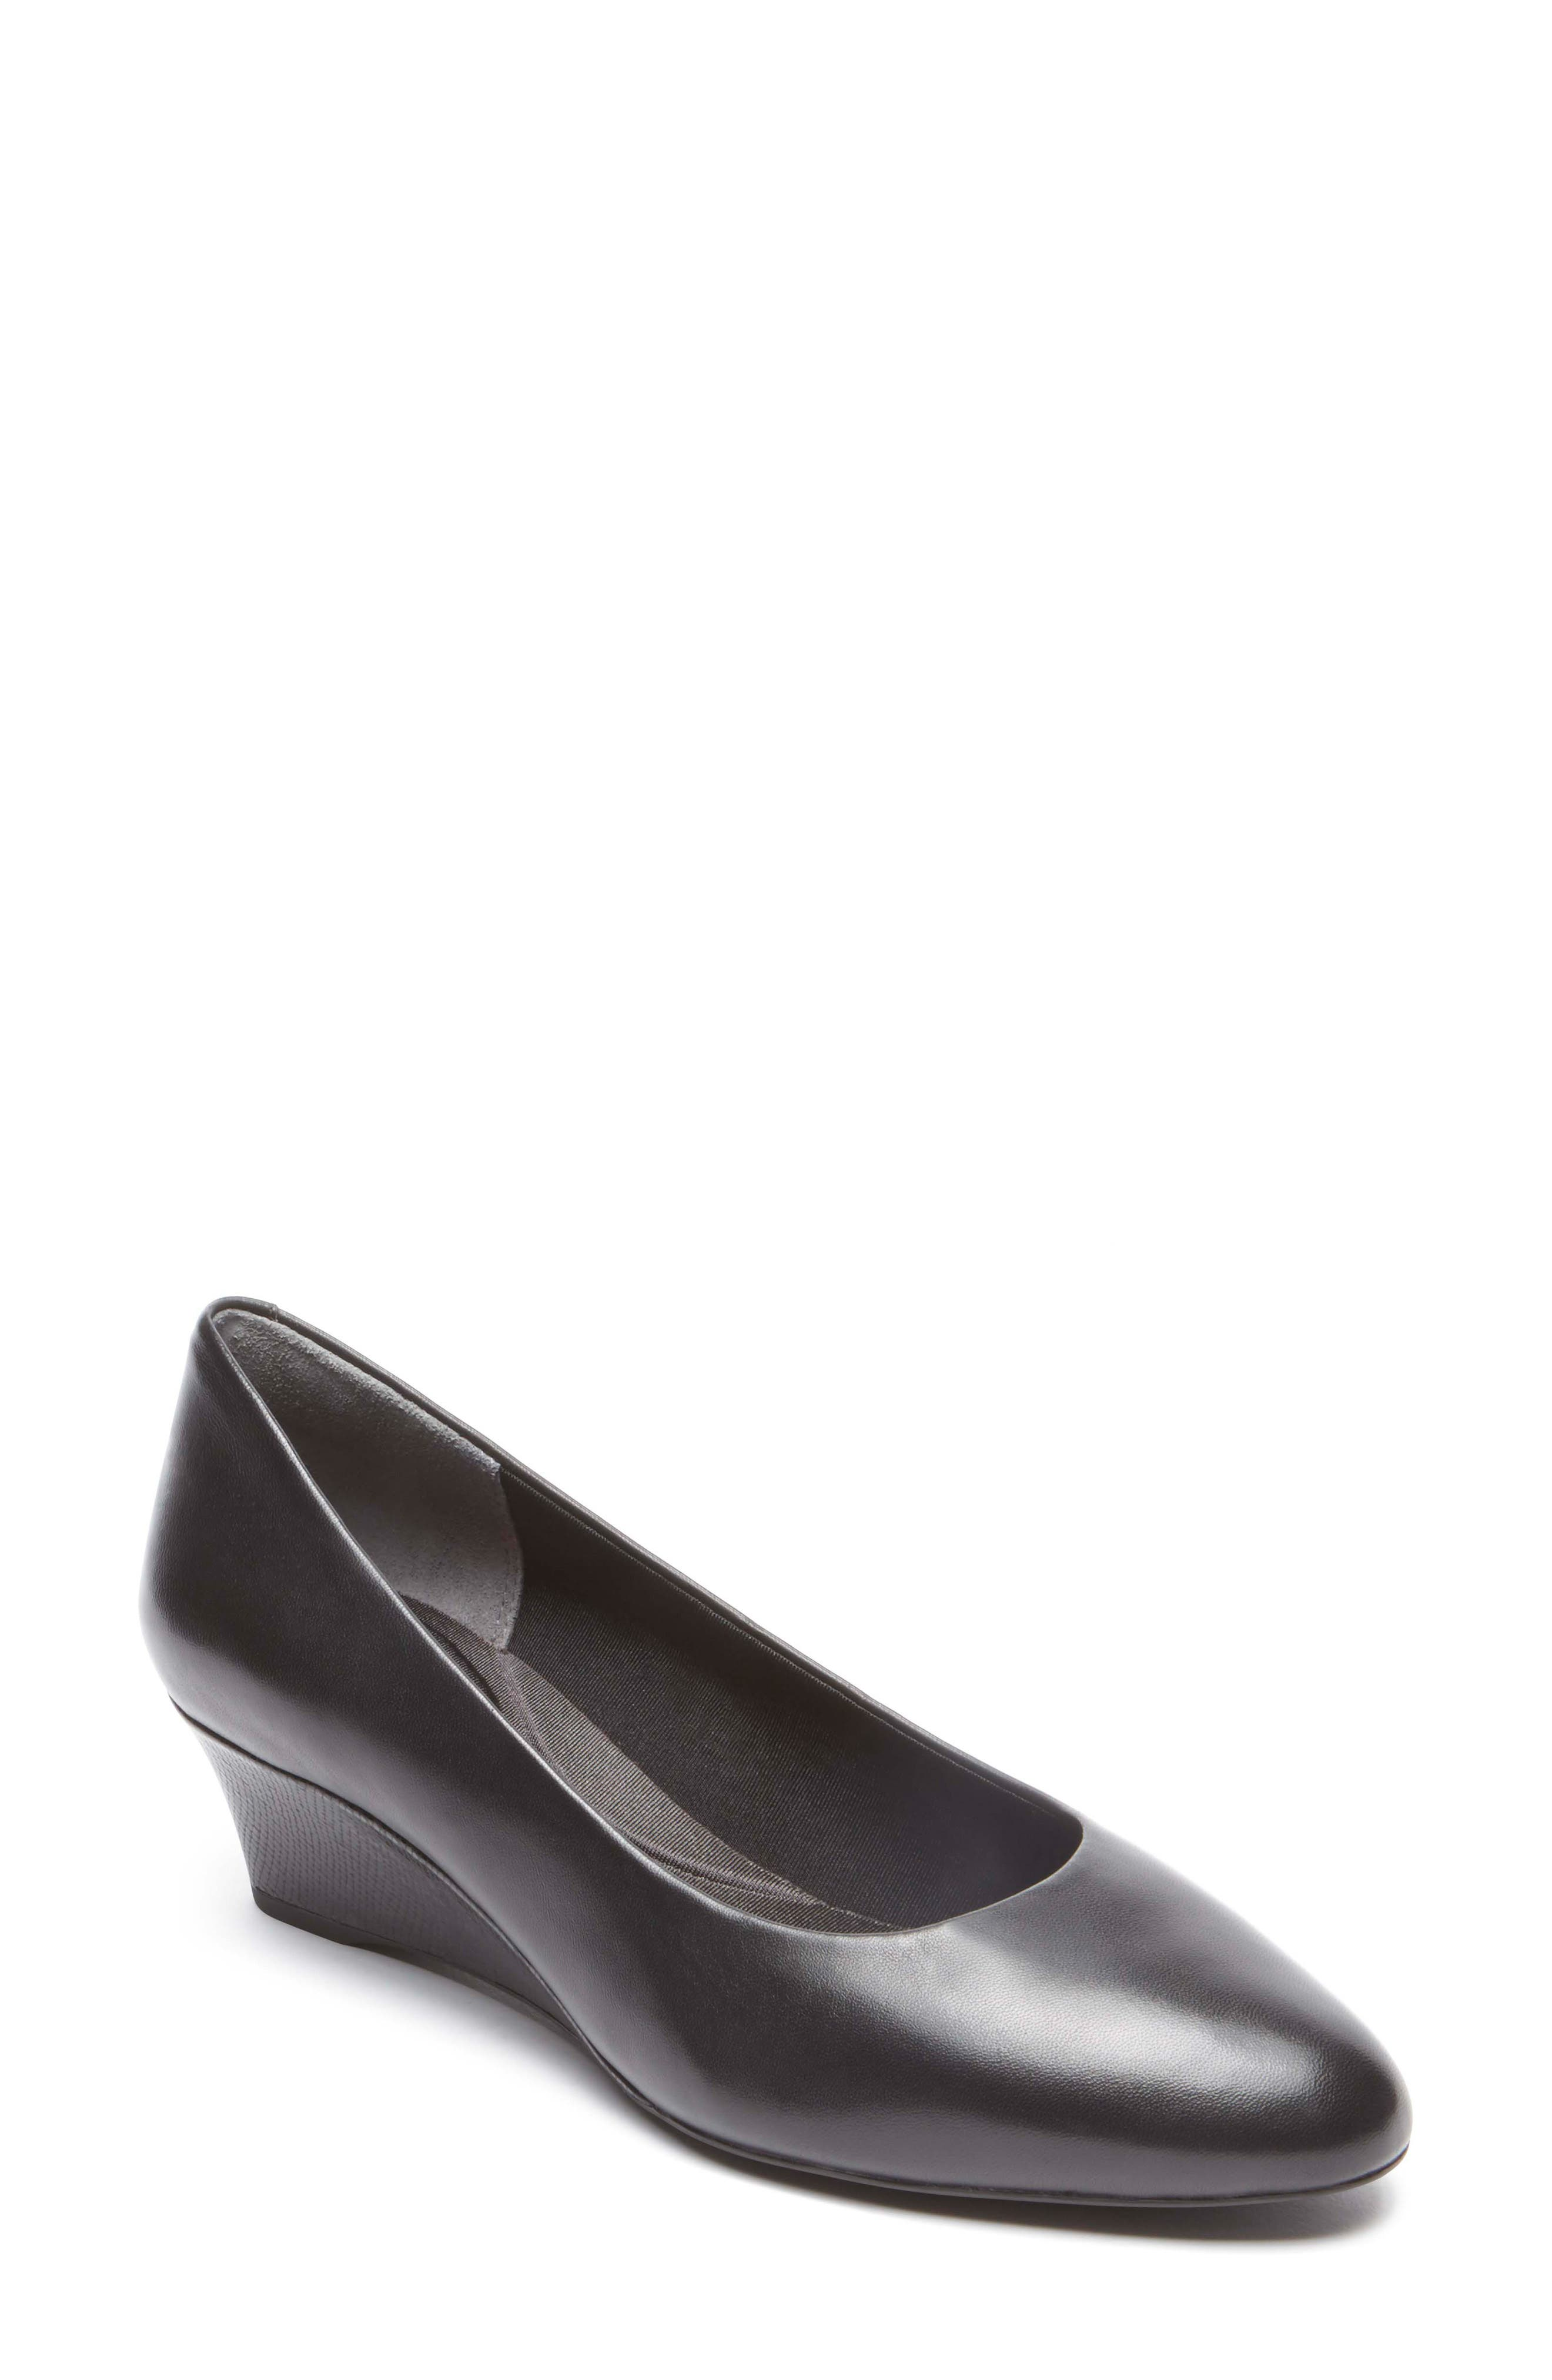 Total Motion Catrin Wedge Pump,                         Main,                         color, BLACK LEATHER